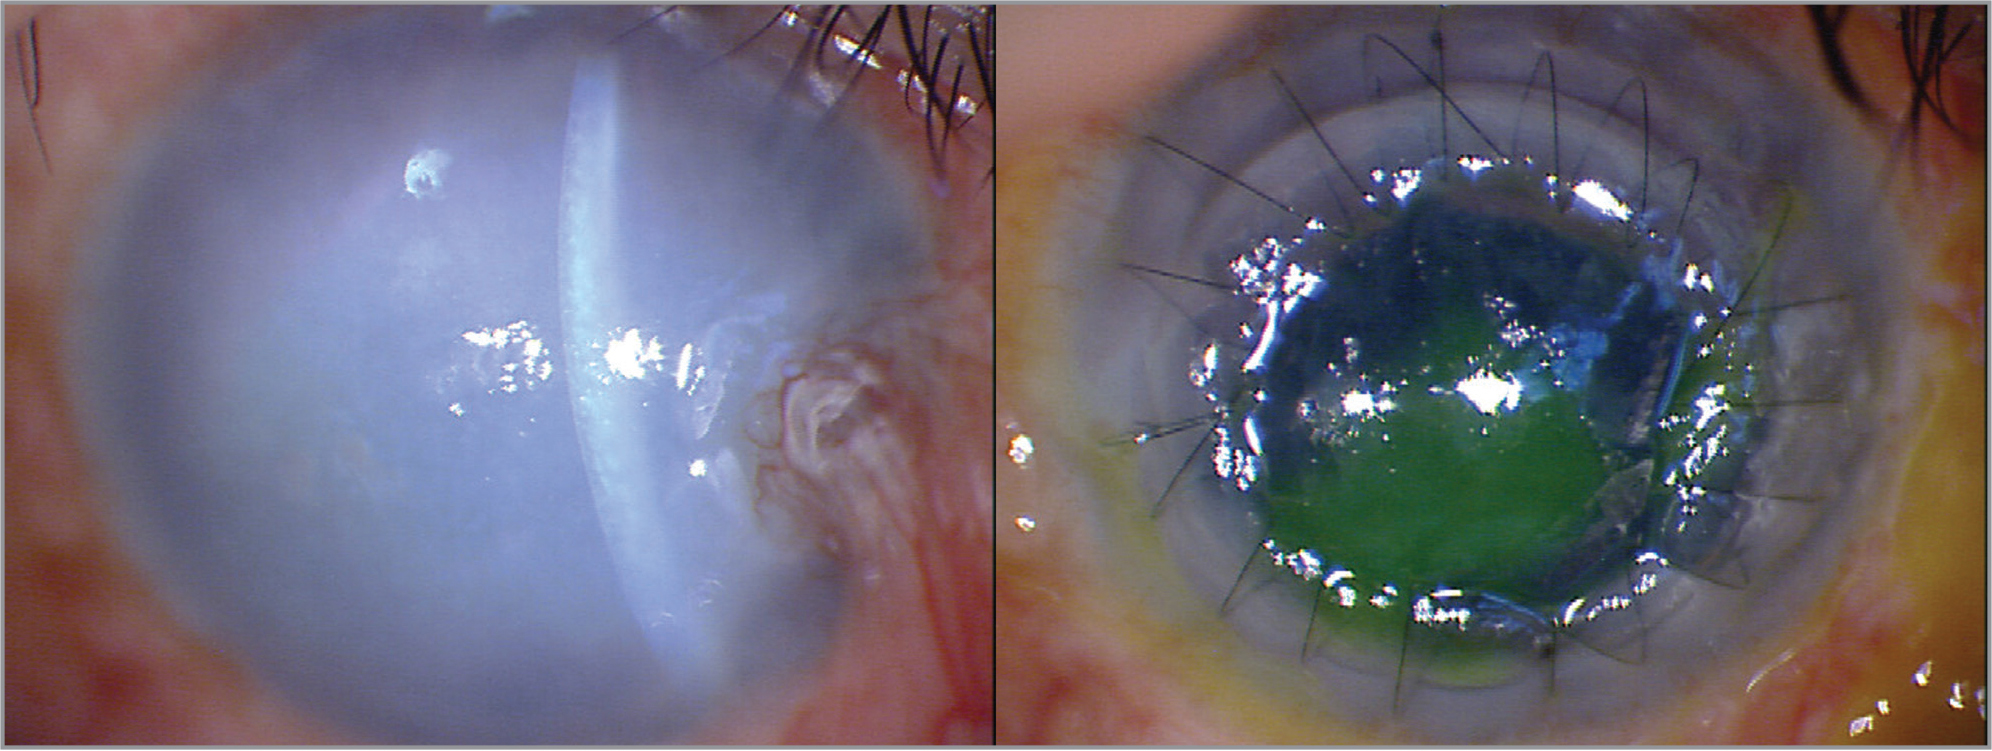 Slit-lamp photograph of the patient's right eye before (right) and after (left) full-thickness keratopathy. At 1-year post-injury, full-thickness corneal transplantation, vitreous surgery using an Eckard temporary keratoprosthesis, and silicone oil removal were simultaneously performed due to the progression of bullous keratopathy. Post-surgery corneal transparency was improved.